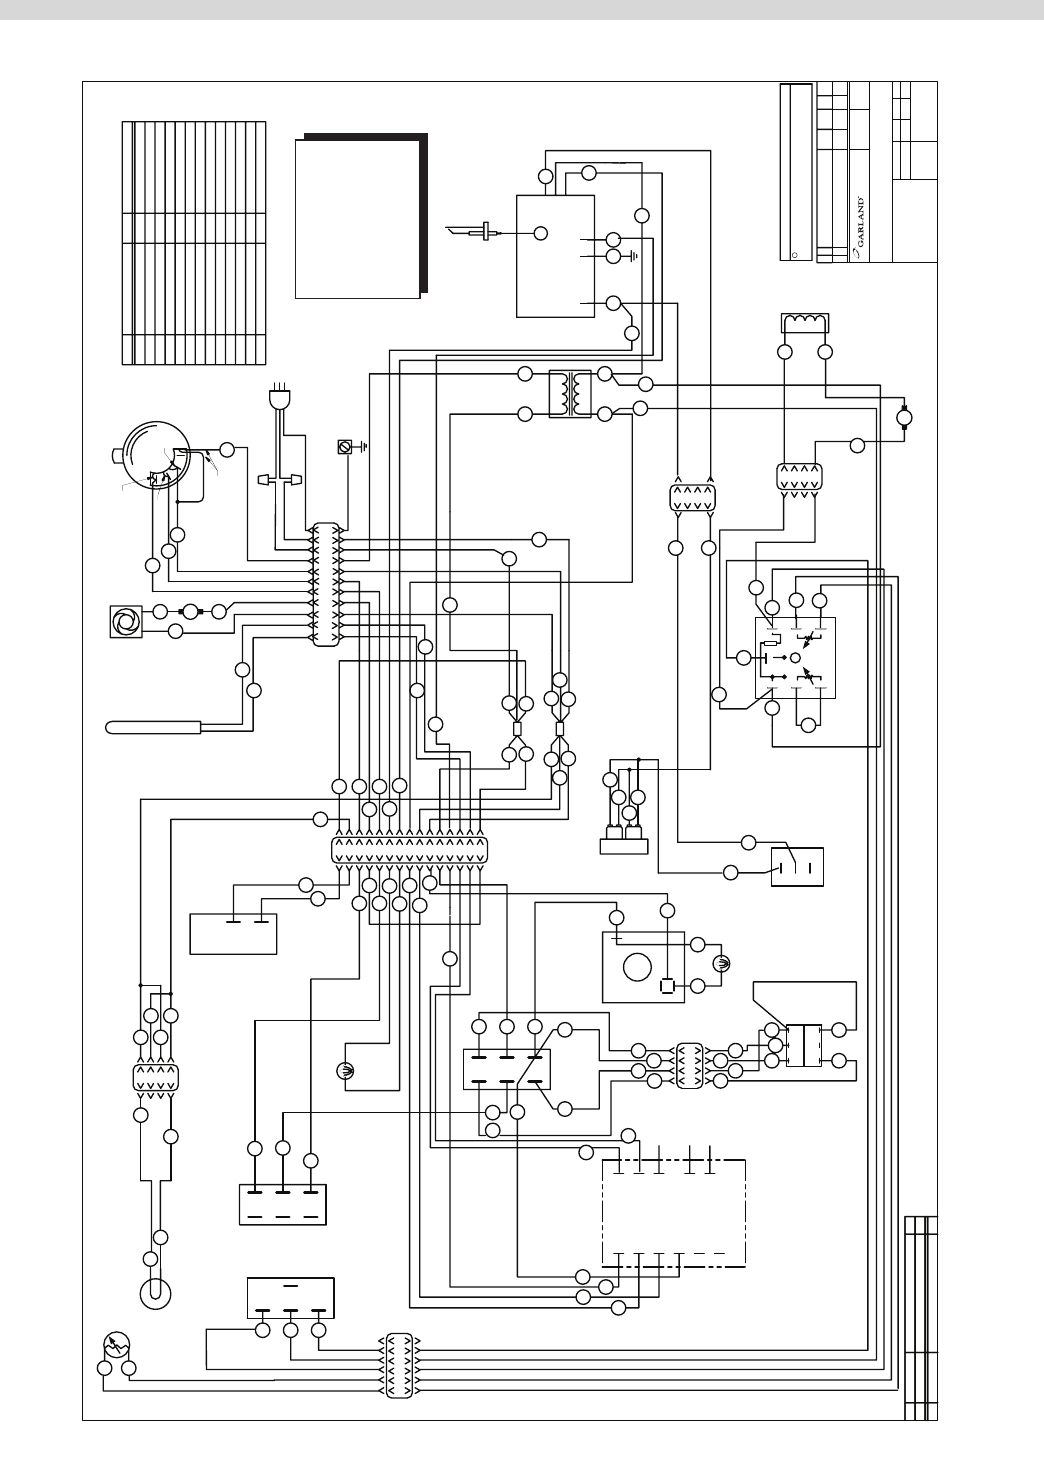 Page 55 Of Garland Oven Mp Gs User Guide Manualsonlinecom Raymarine Microphone Wiring Diagram Part Mpsm07 03 24 08 Diagrams